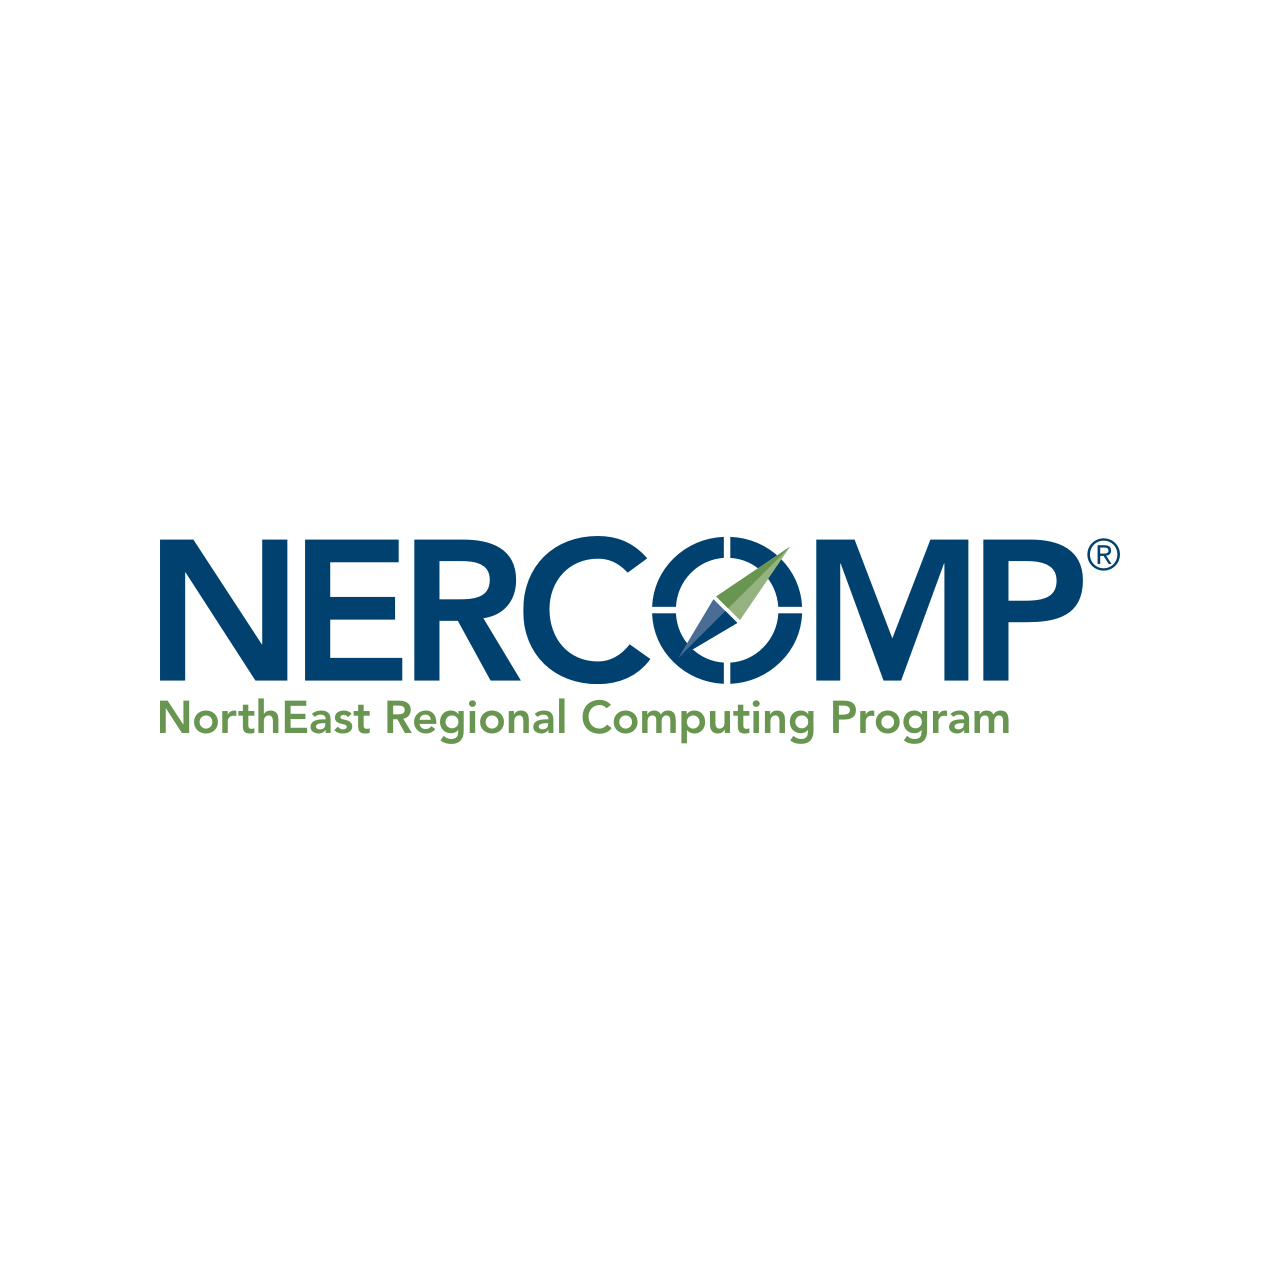 NERCOMP